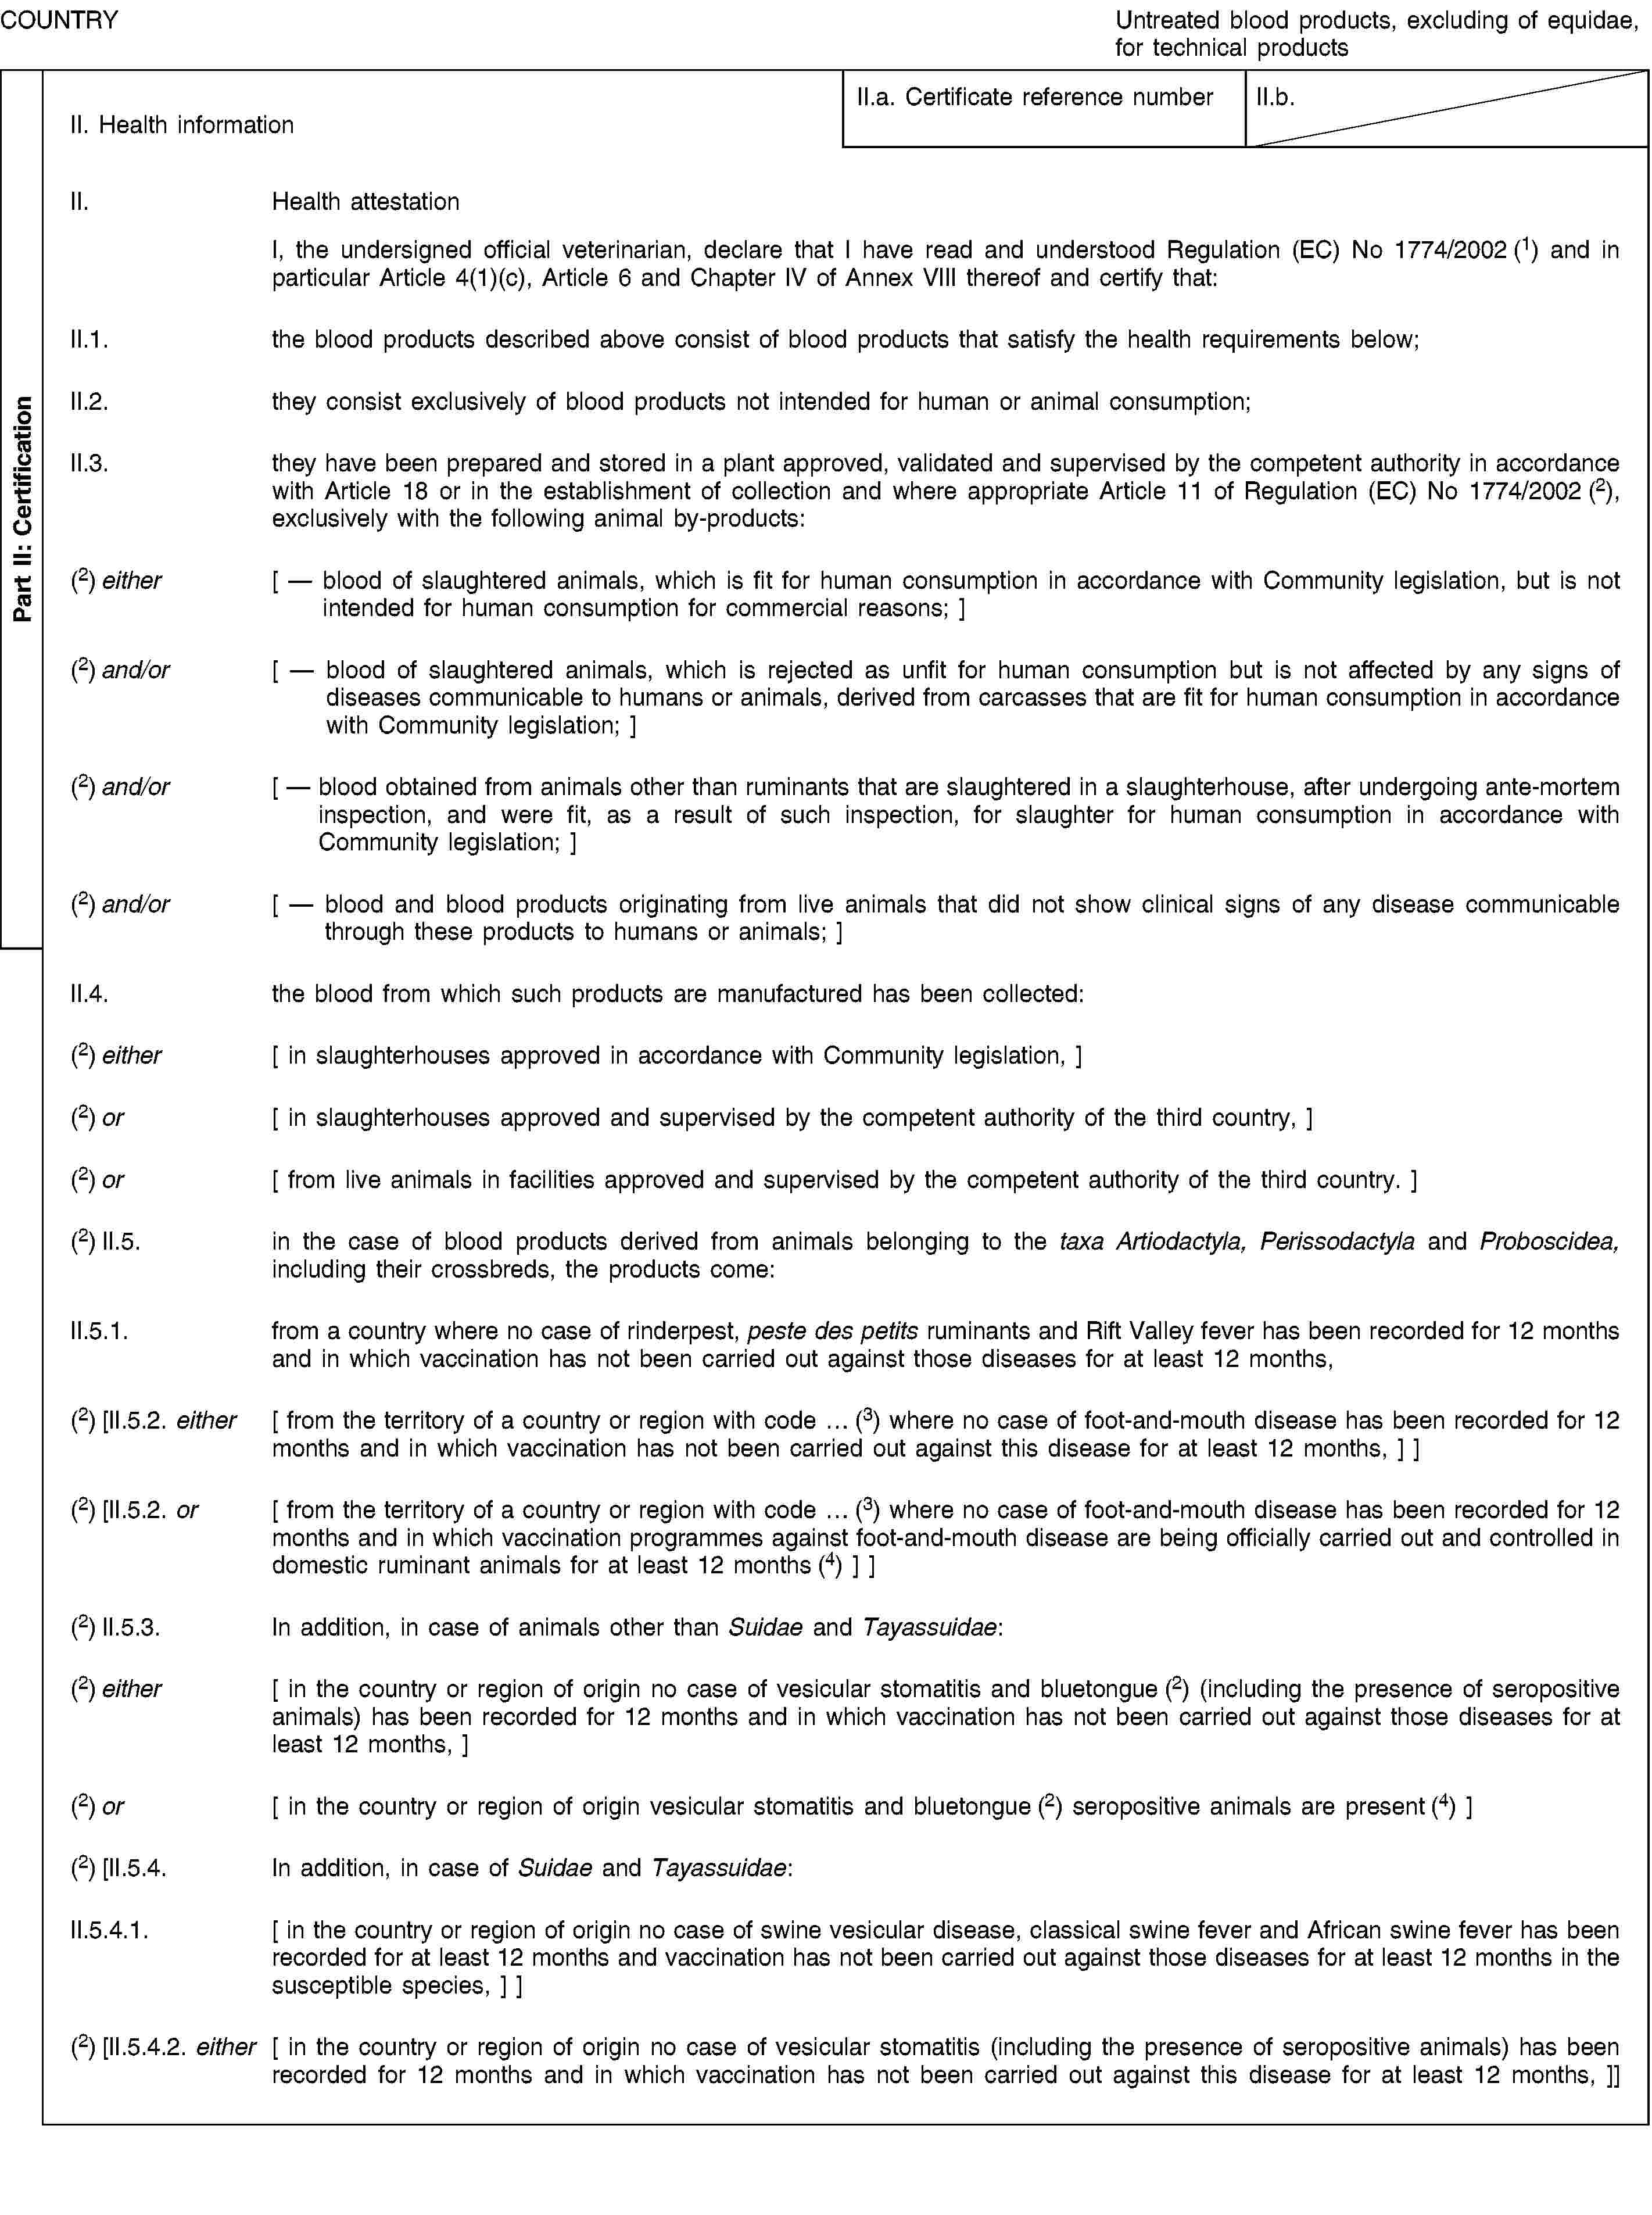 Part II: CertificationCOUNTRYUntreated blood products, excluding of equidae, for technical productsII. Health informationII.a. Certificate reference numberII.b.II. Health attestationI, the undersigned official veterinarian, declare that I have read and understood Regulation (EC) No 1774/2002 (1) and in particular Article 4(1)(c), Article 6 and Chapter IV of Annex VIII thereof and certify that:II.1. the blood products described above consist of blood products that satisfy the health requirements below;II.2. they consist exclusively of blood products not intended for human or animal consumption;II.3. they have been prepared and stored in a plant approved, validated and supervised by the competent authority in accordance with Article 18 or in the establishment of collection and where appropriate Article 11 of Regulation (EC) No 1774/2002 (2), exclusively with the following animal by-products:(2) either [ — blood of slaughtered animals, which is fit for human consumption in accordance with Community legislation, but is not intended for human consumption for commercial reasons; ](2) and/or [ — blood of slaughtered animals, which is rejected as unfit for human consumption but is not affected by any signs of diseases communicable to humans or animals, derived from carcasses that are fit for human consumption in accordance with Community legislation; ](2) and/or [ — blood obtained from animals other than ruminants that are slaughtered in a slaughterhouse, after undergoing ante-mortem inspection, and were fit, as a result of such inspection, for slaughter for human consumption in accordance with Community legislation; ](2) and/or [ — blood and blood products originating from live animals that did not show clinical signs of any disease communicable through these products to humans or animals; ]II.4. the blood from which such products are manufactured has been collected:(2) either [ in slaughterhouses approved in accordance with Community legislation, ](2) or [ in slaughterhou